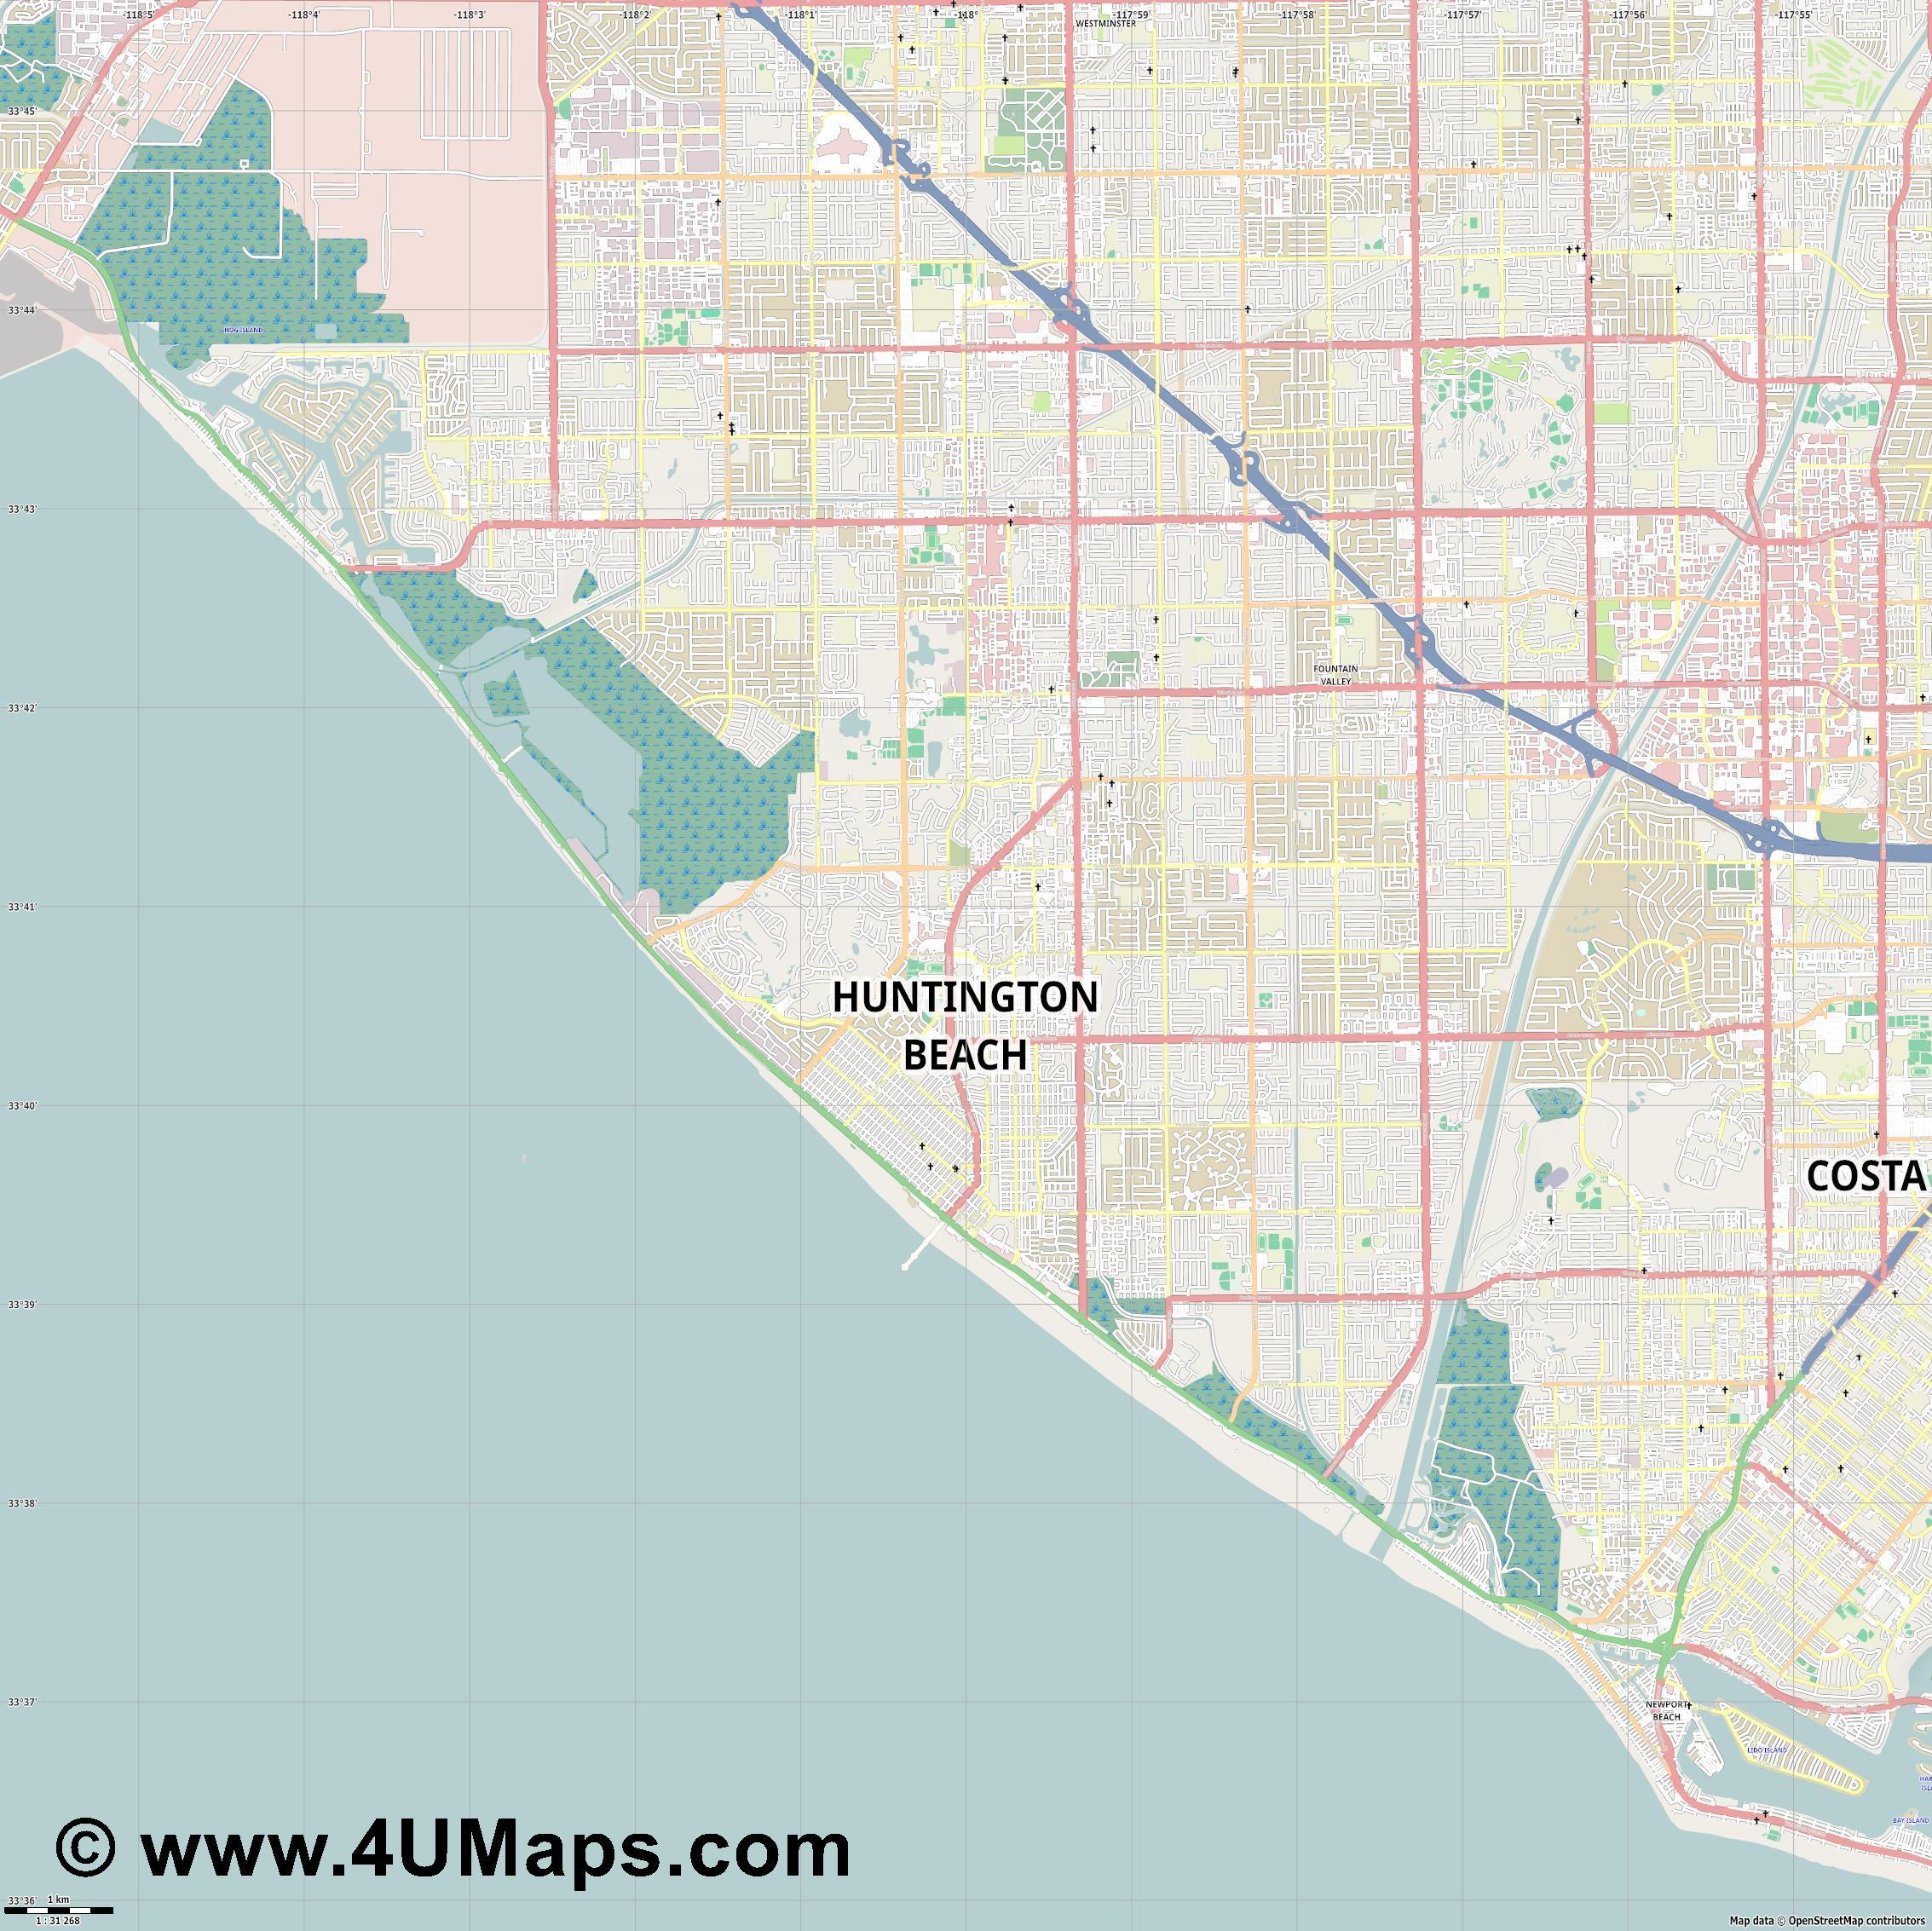 Huntington Beach  jpg high detail, large area preview vector city map